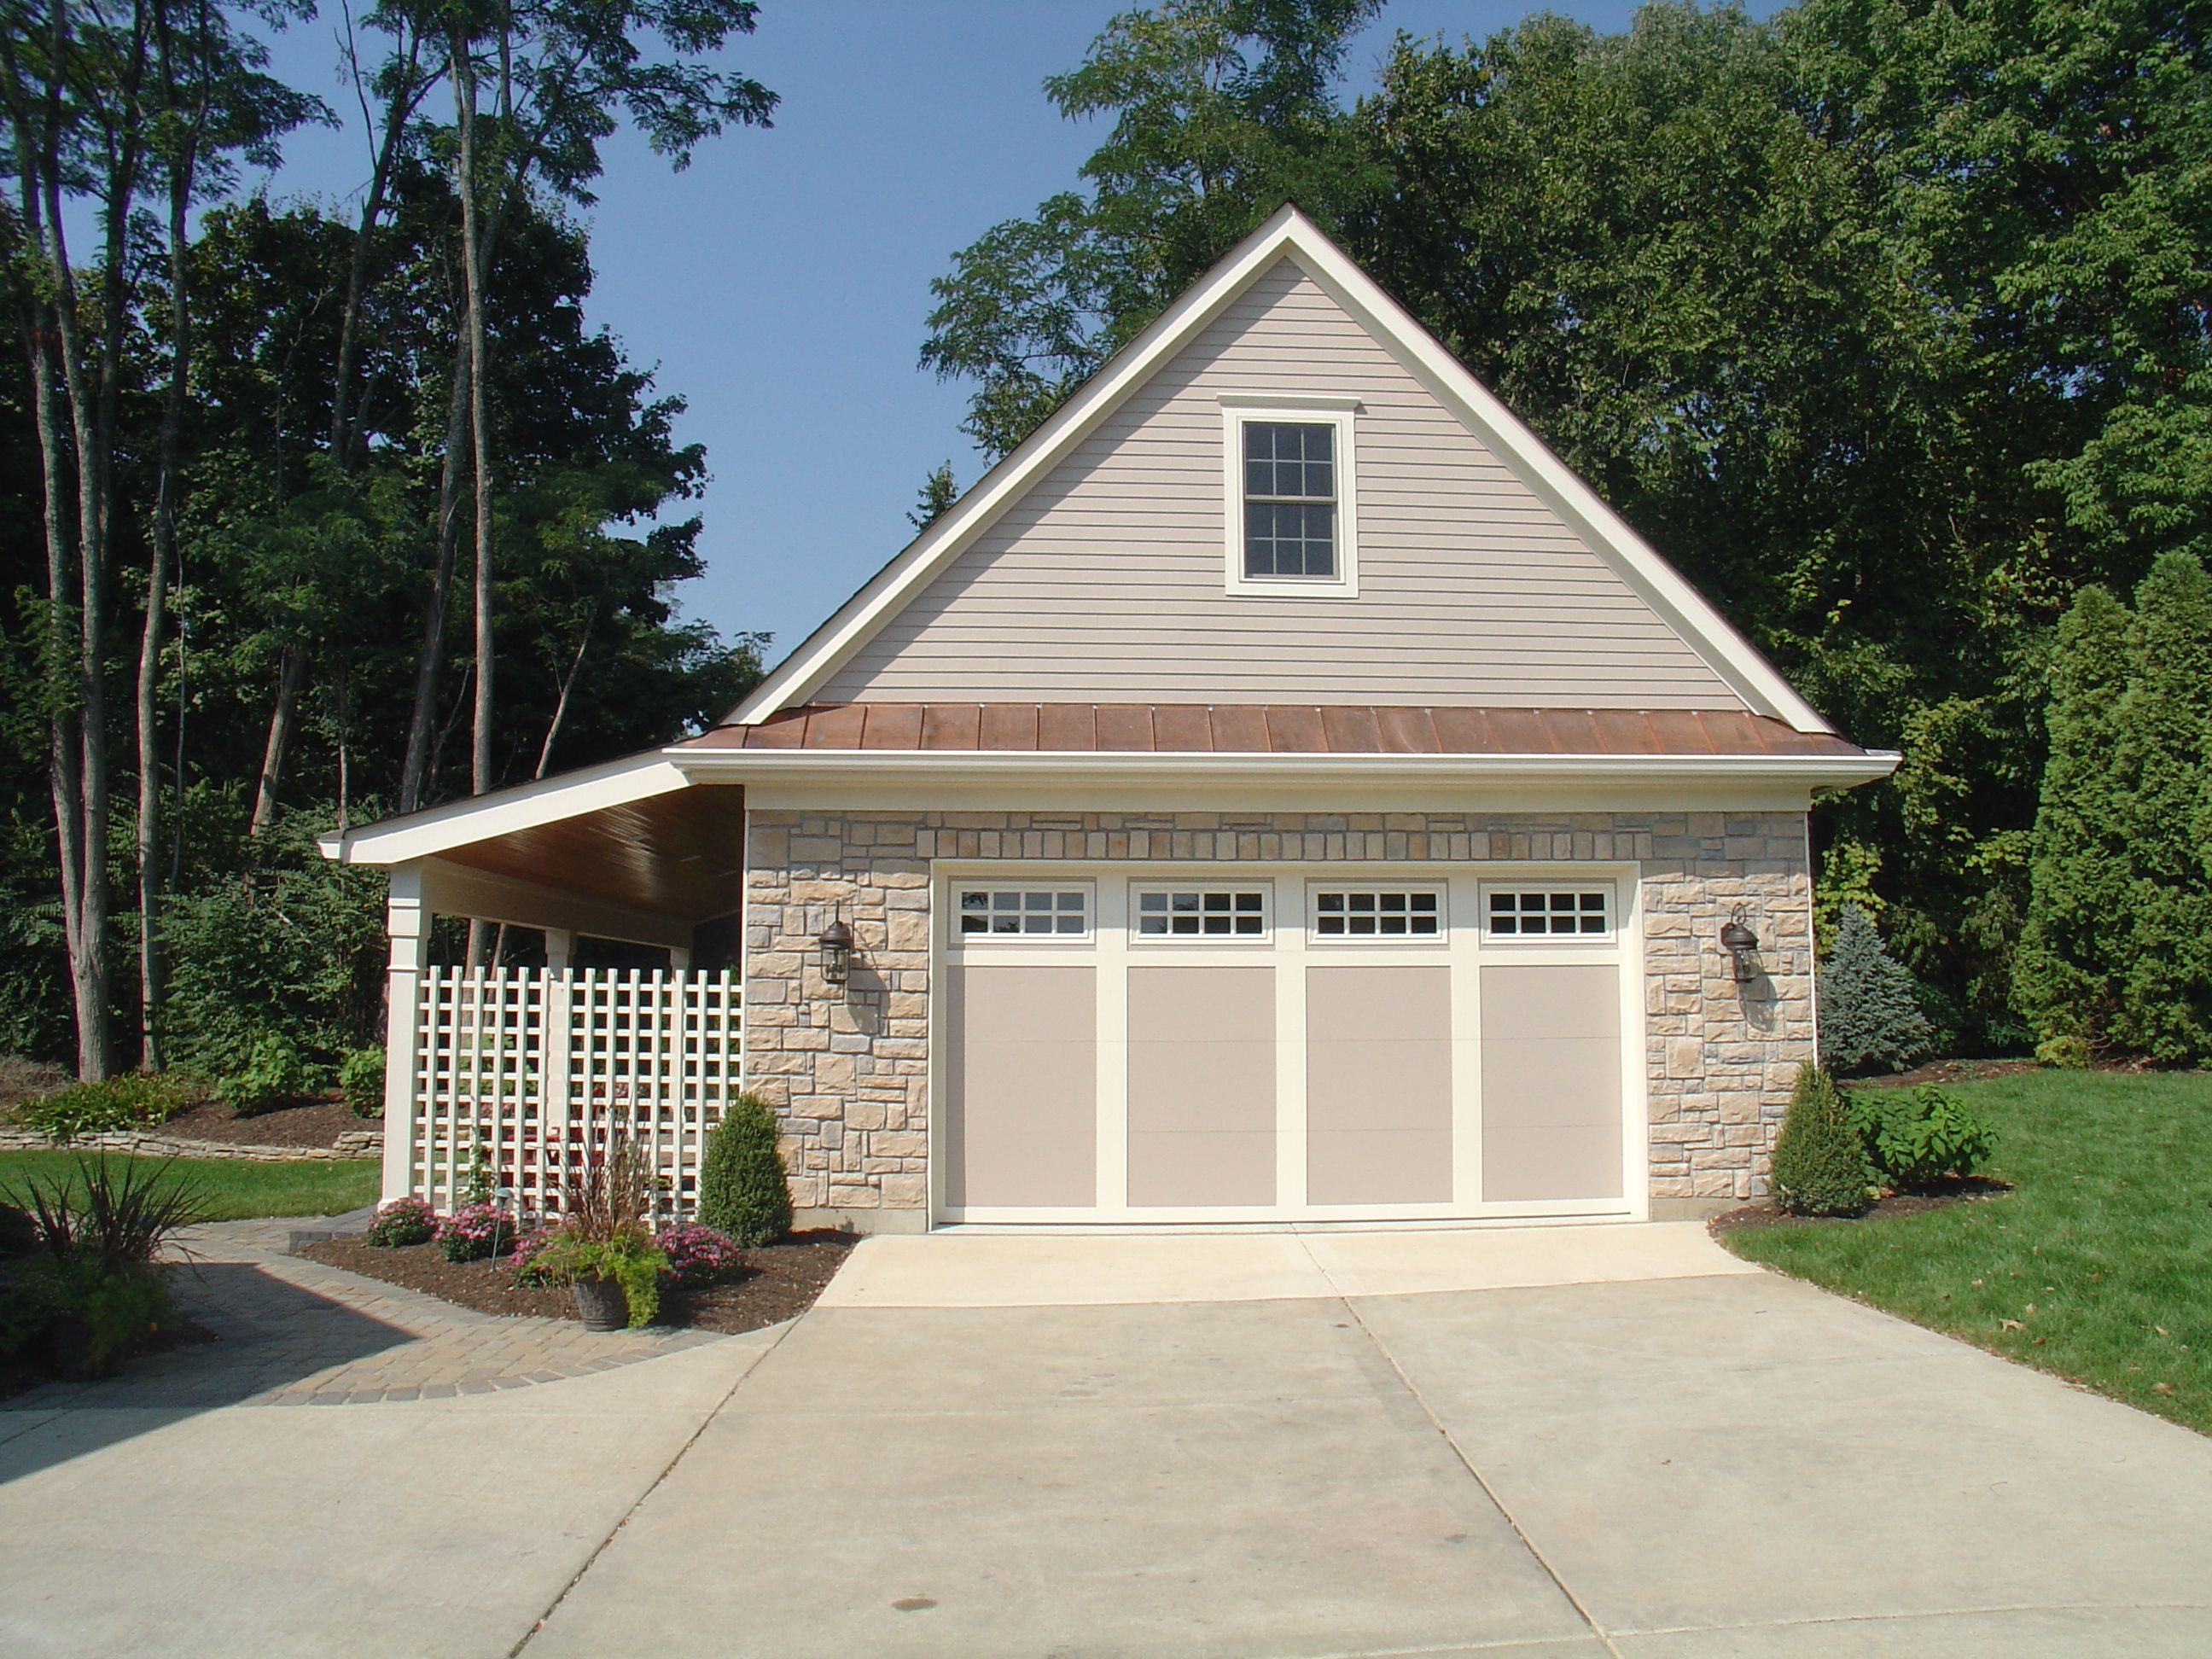 Another version of a detached garage with porch to the for Detached garage blueprints